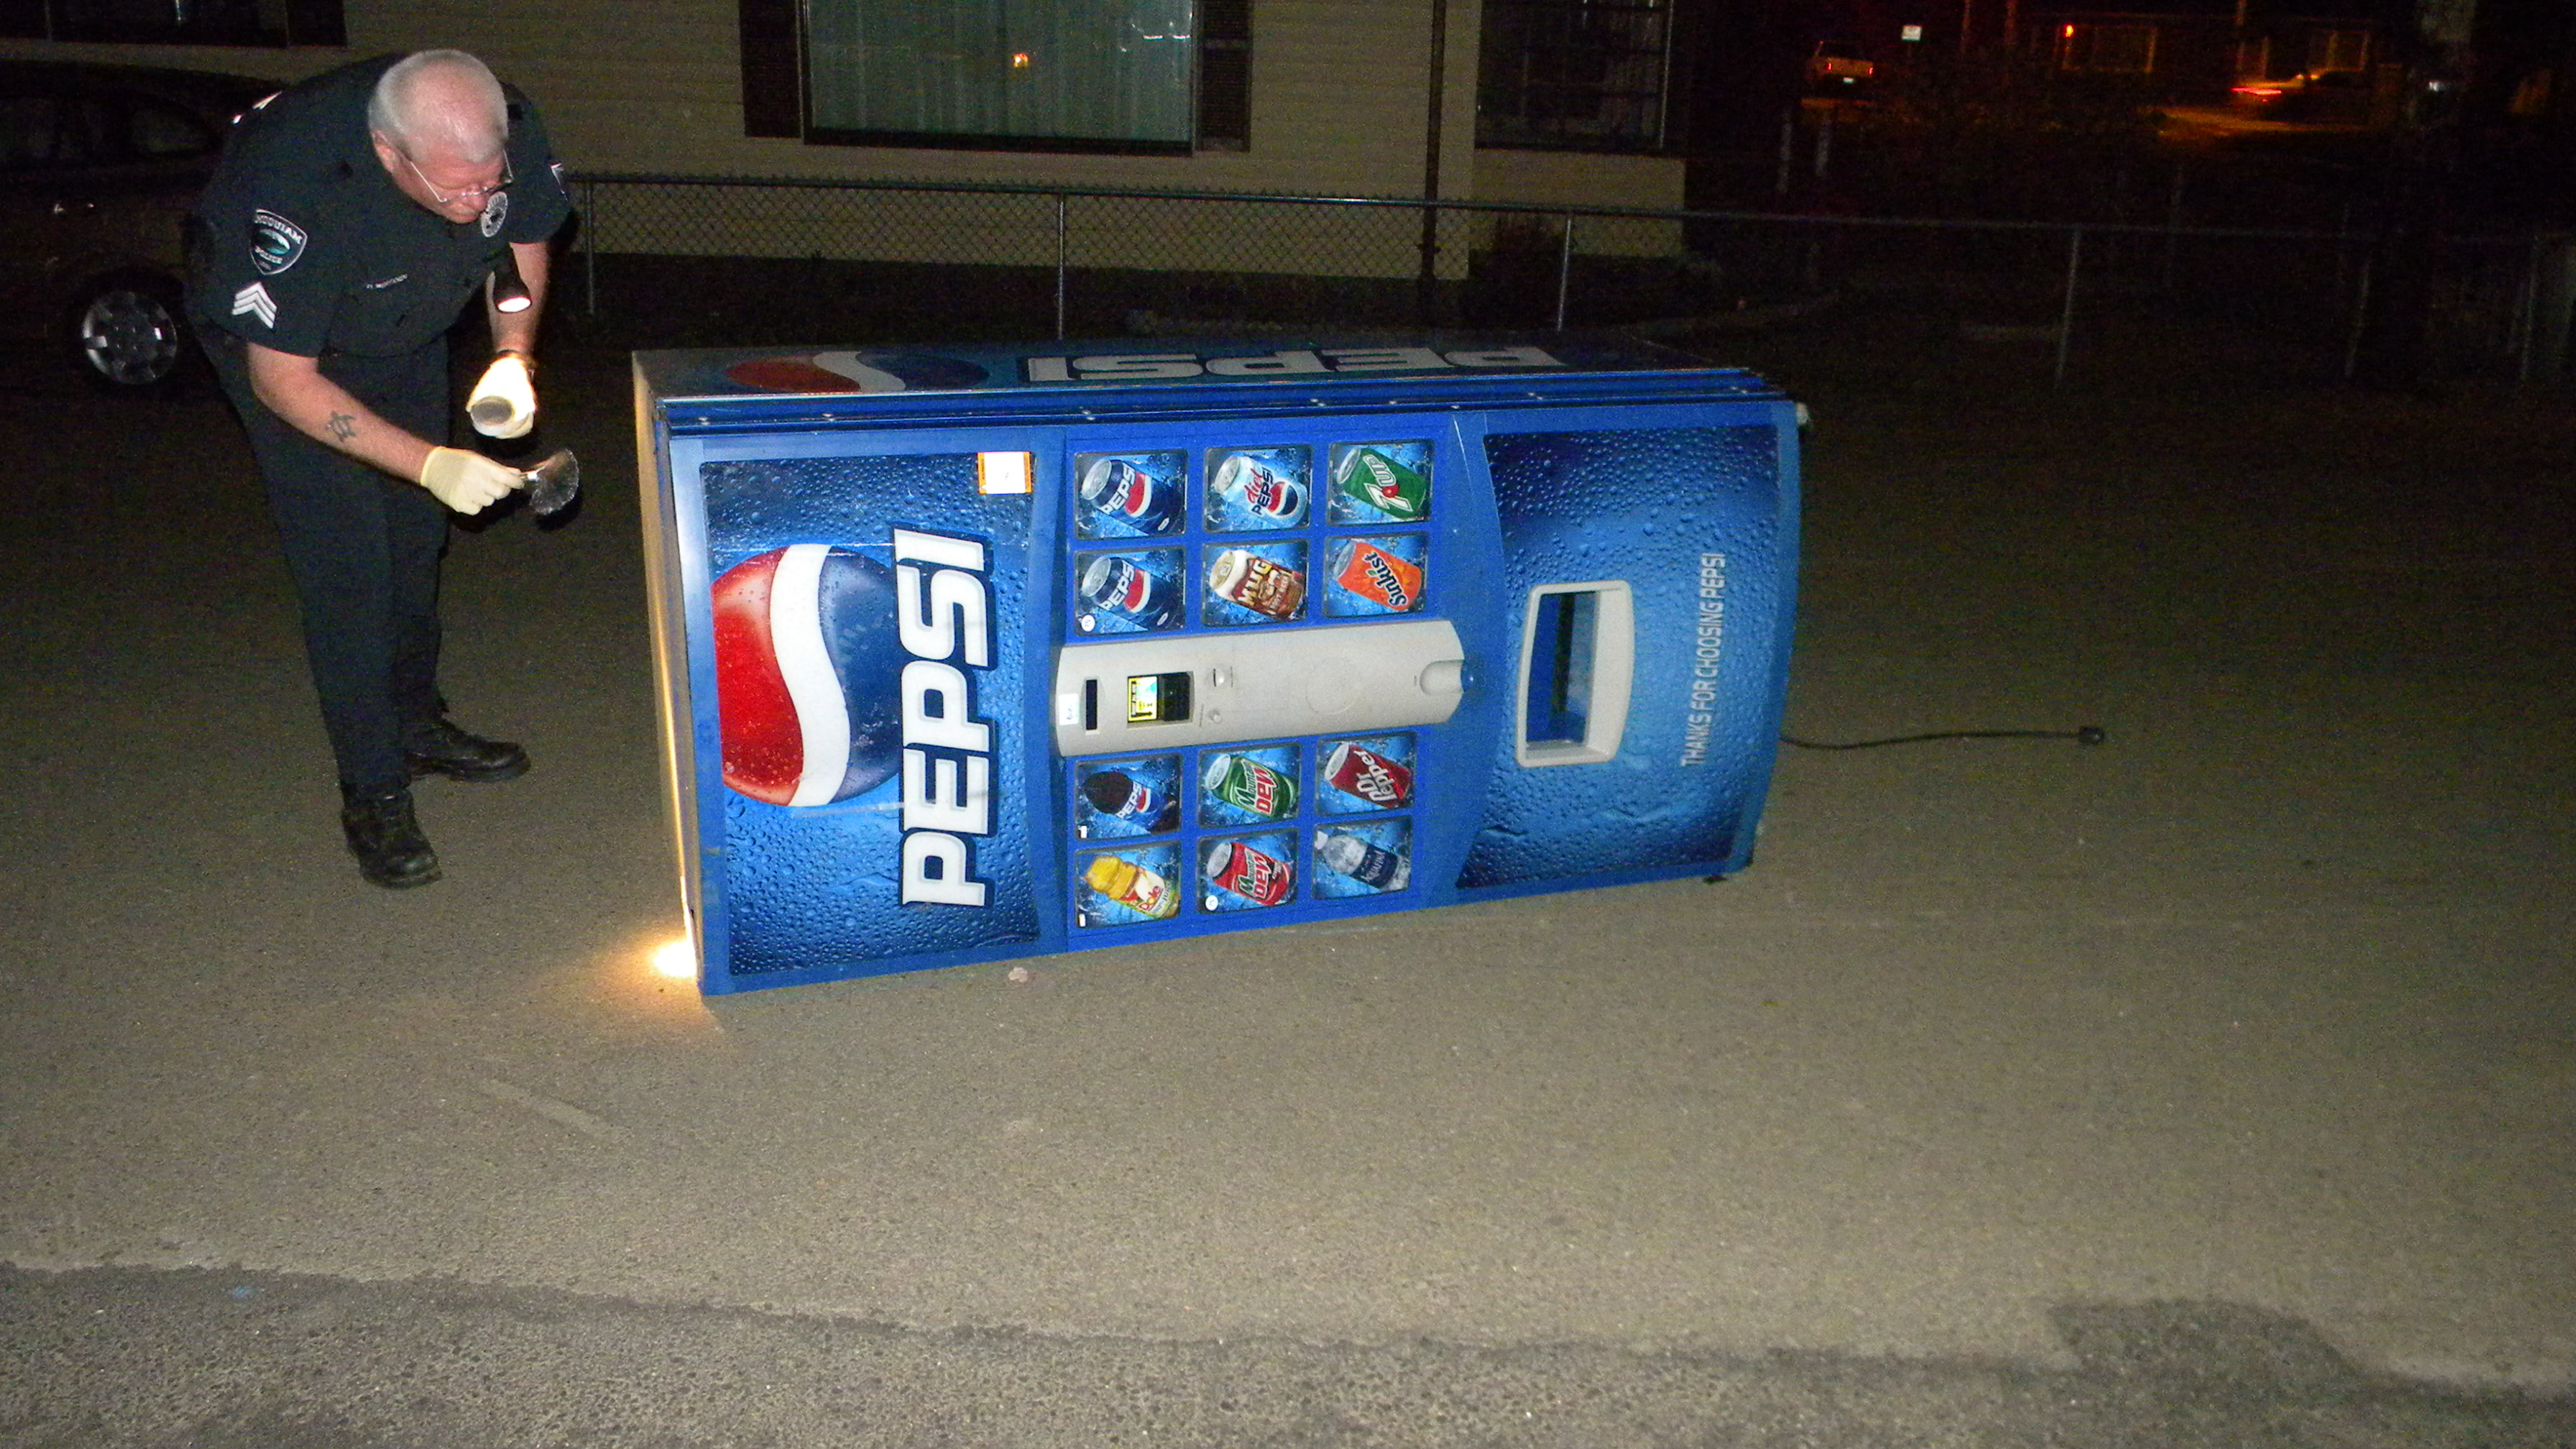 -Sgt. Wertanen processes the stolen Pepsi machine for latent prints